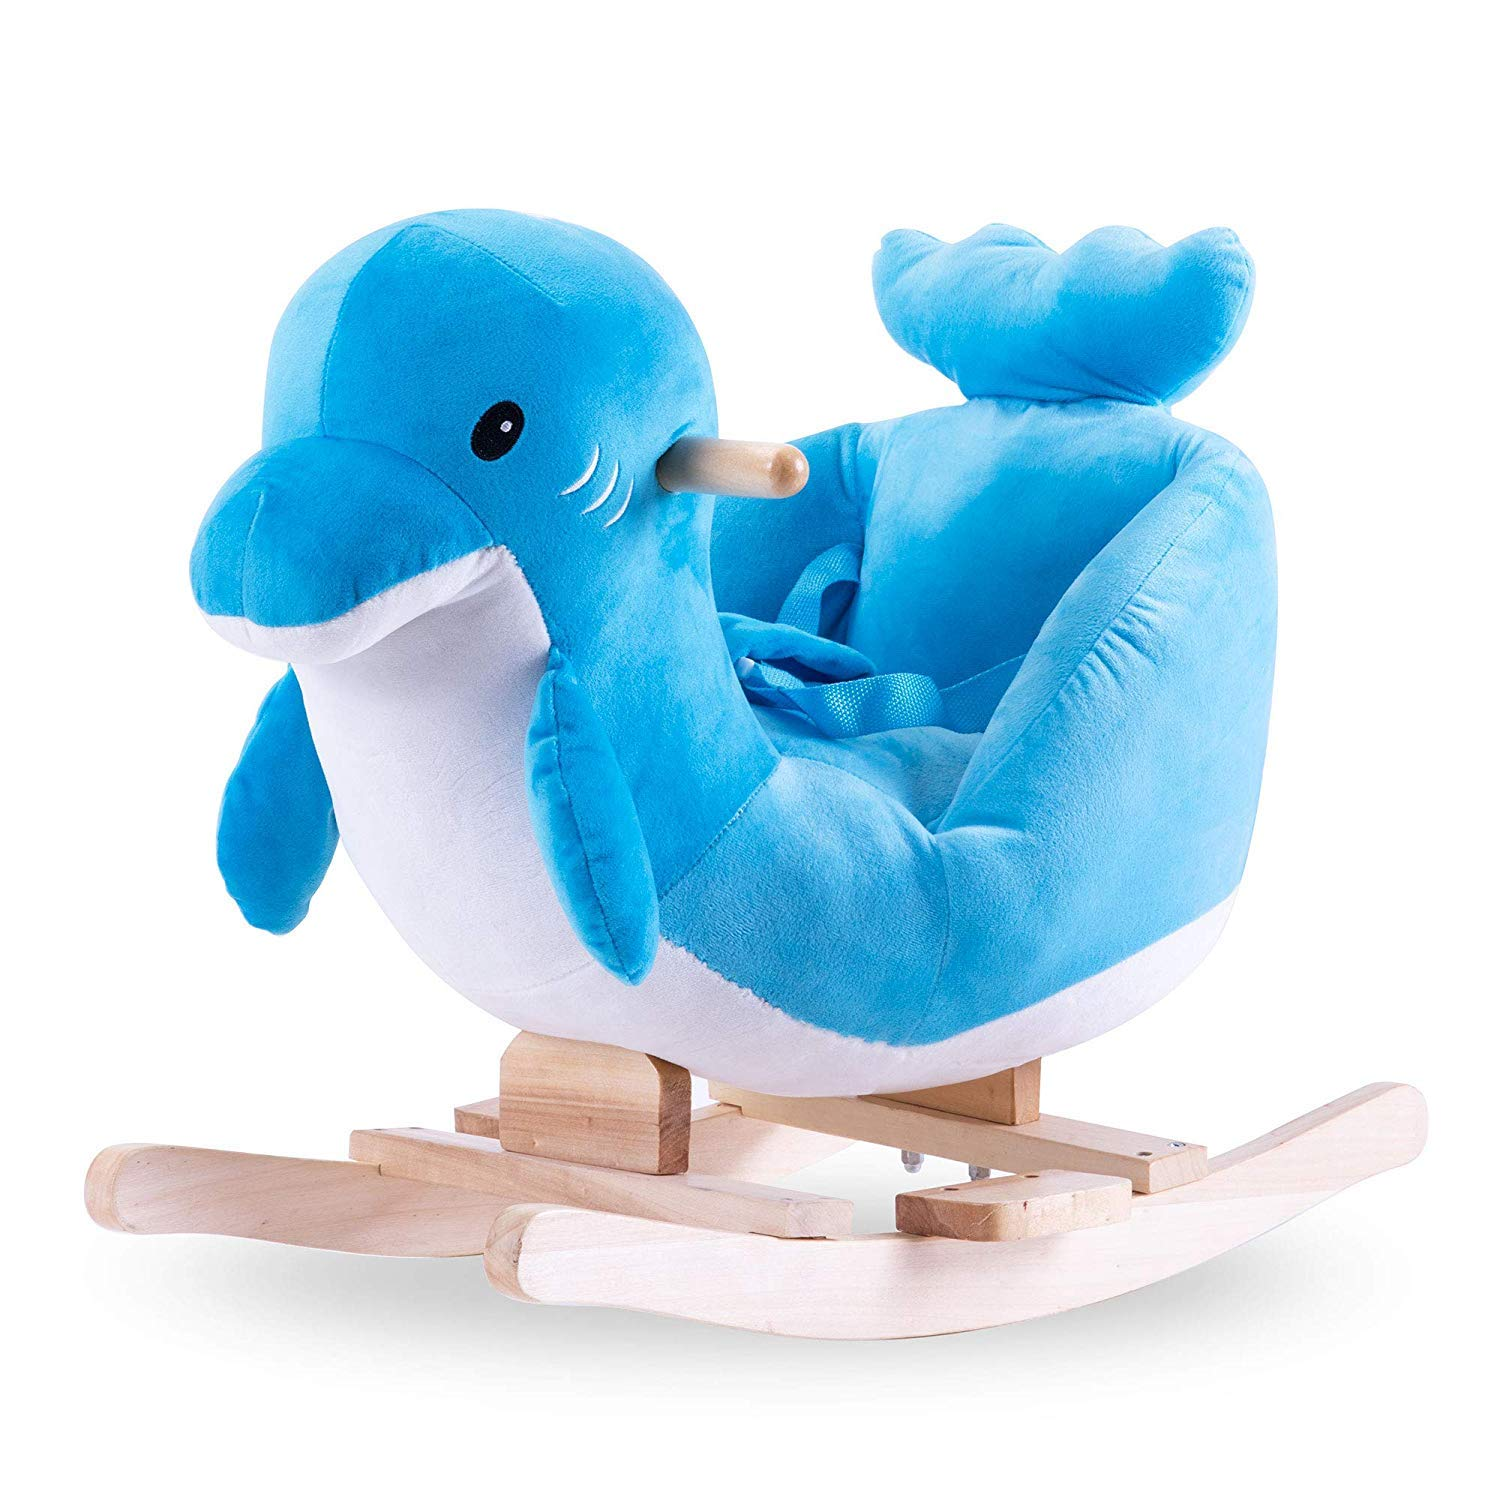 Child Stuffed Animal Rocking, Ride-On Rocker Plush Toy Rocking Horse for Over 3 Year-Old Kids Rocking Animals with Seat Belt & Wood Handle, Child Best Gift (Blue Dolphin)